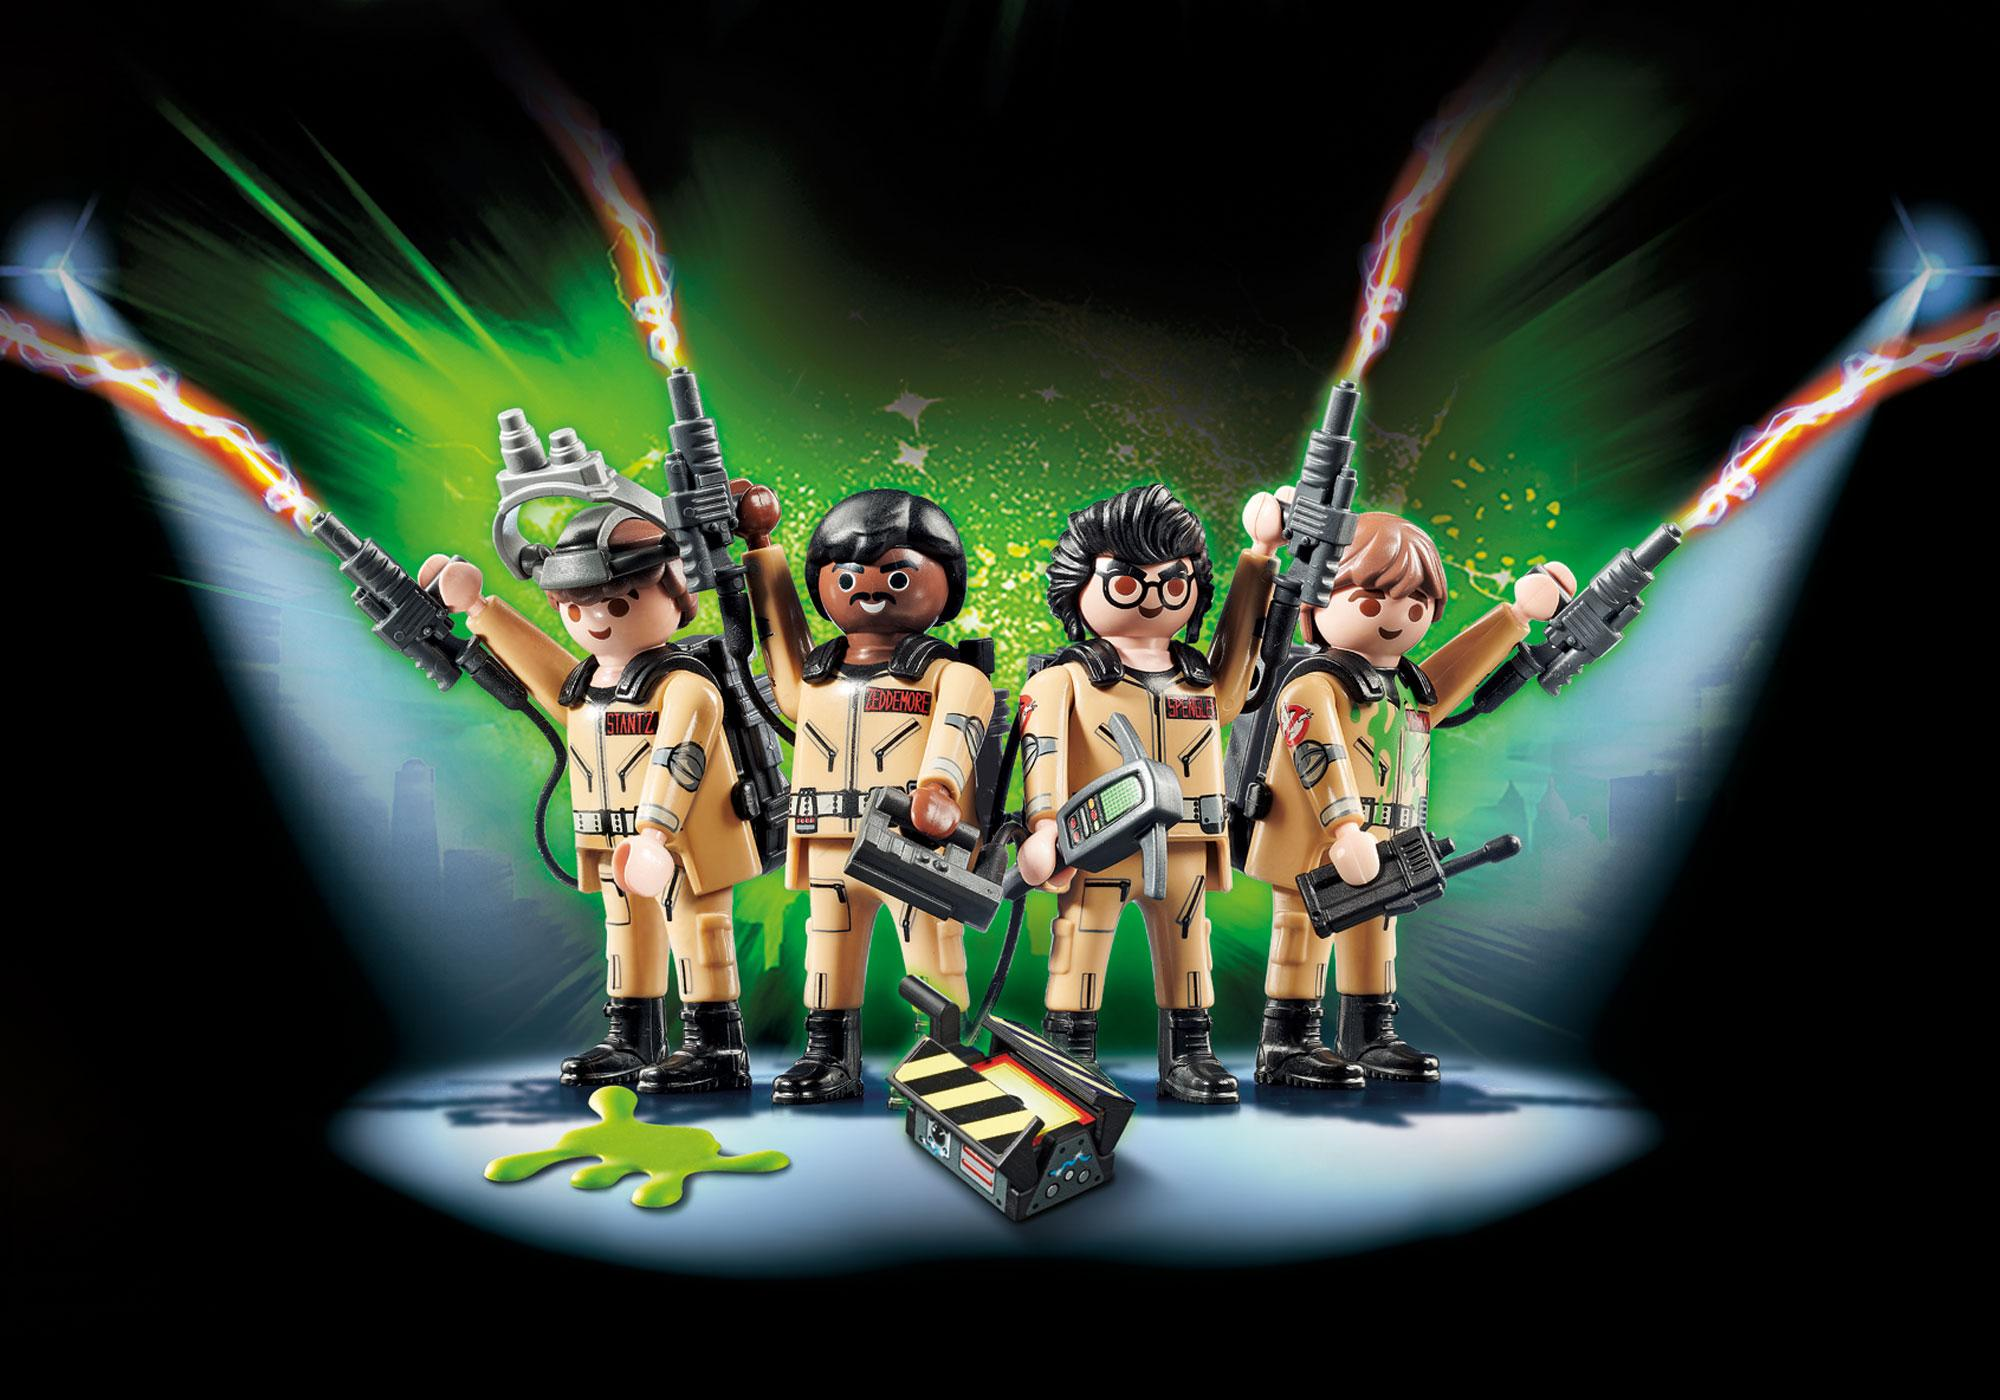 http://media.playmobil.com/i/playmobil/70175_product_detail/Ghostbusters™ Figurenset Ghostbusters™